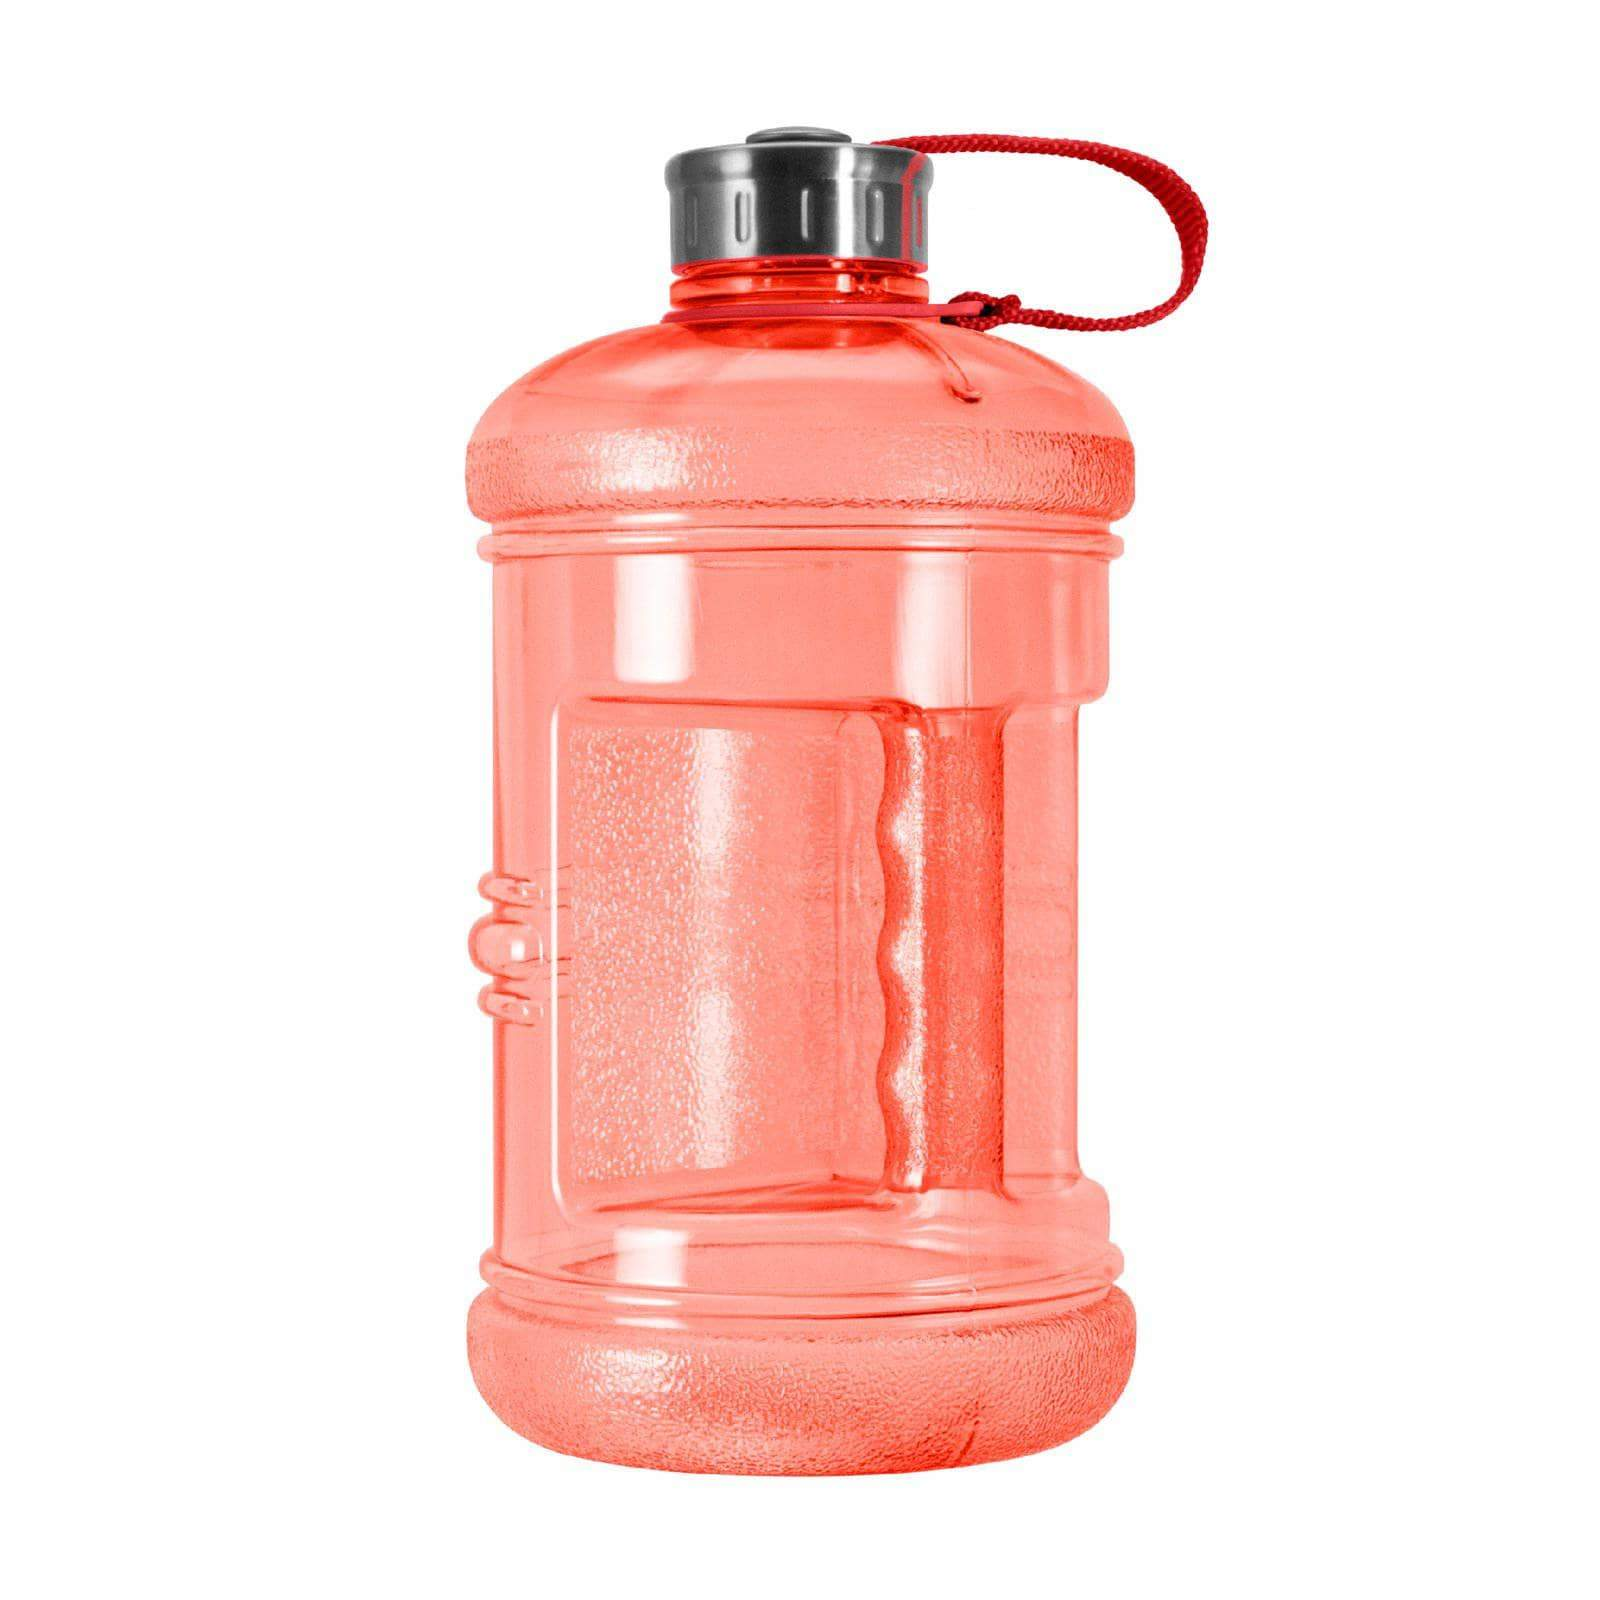 Geo Bottles Bottles Red 2.3 Litter BPA FREE Bottle w/ Stainless Steel Cap